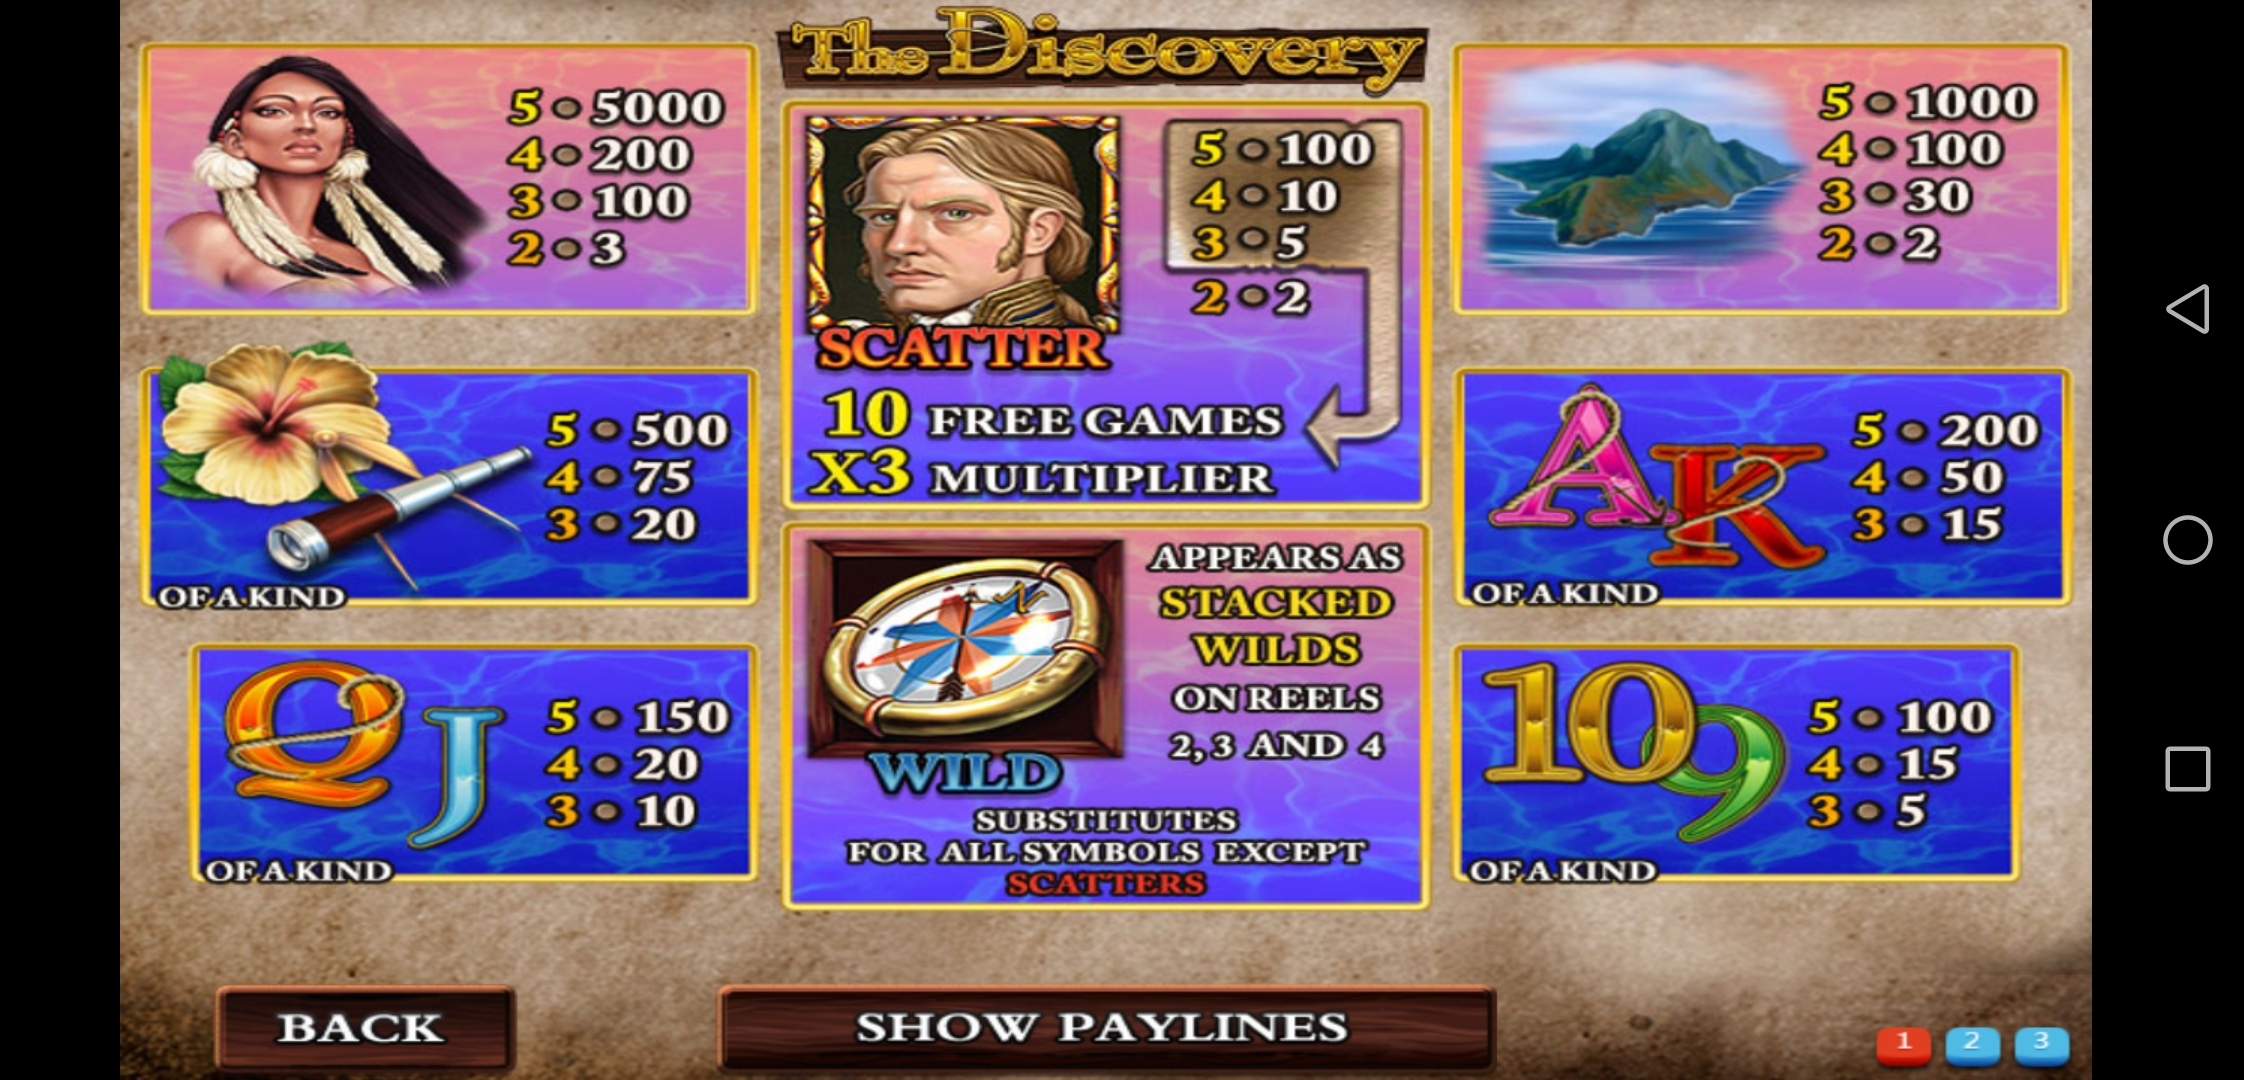 Learn How To Play The Discovery Video Slot in Kiosk XE88 Login